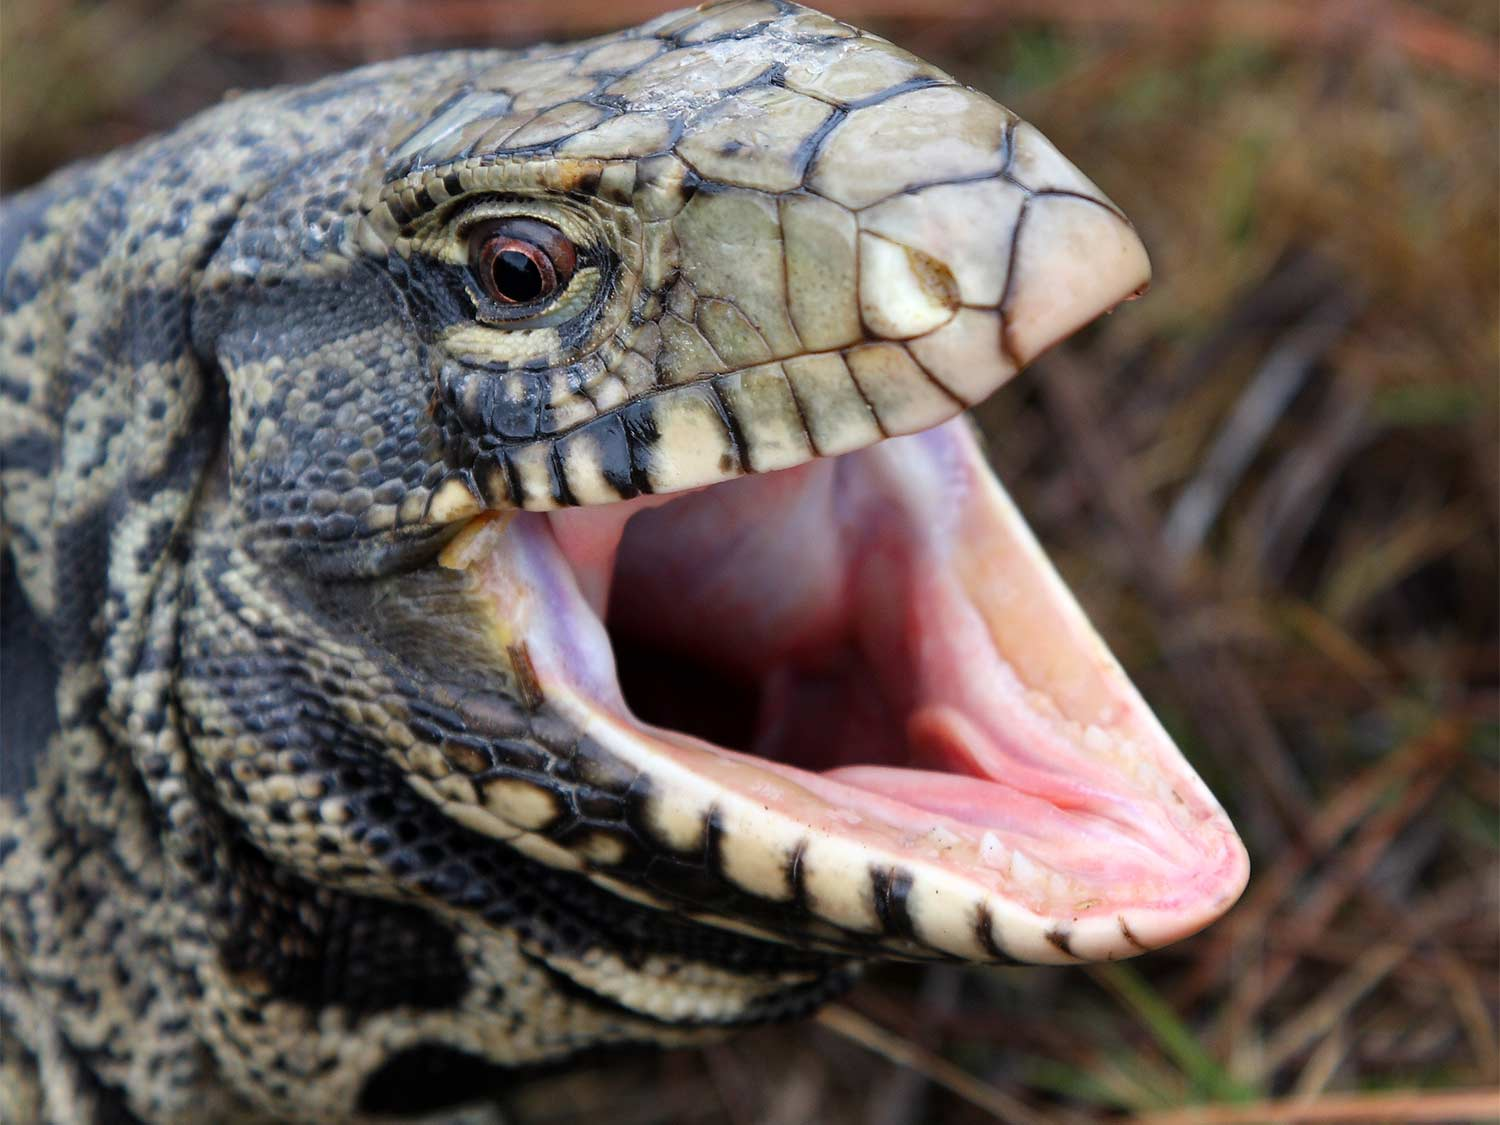 An Argentine tegu with its mouth open.